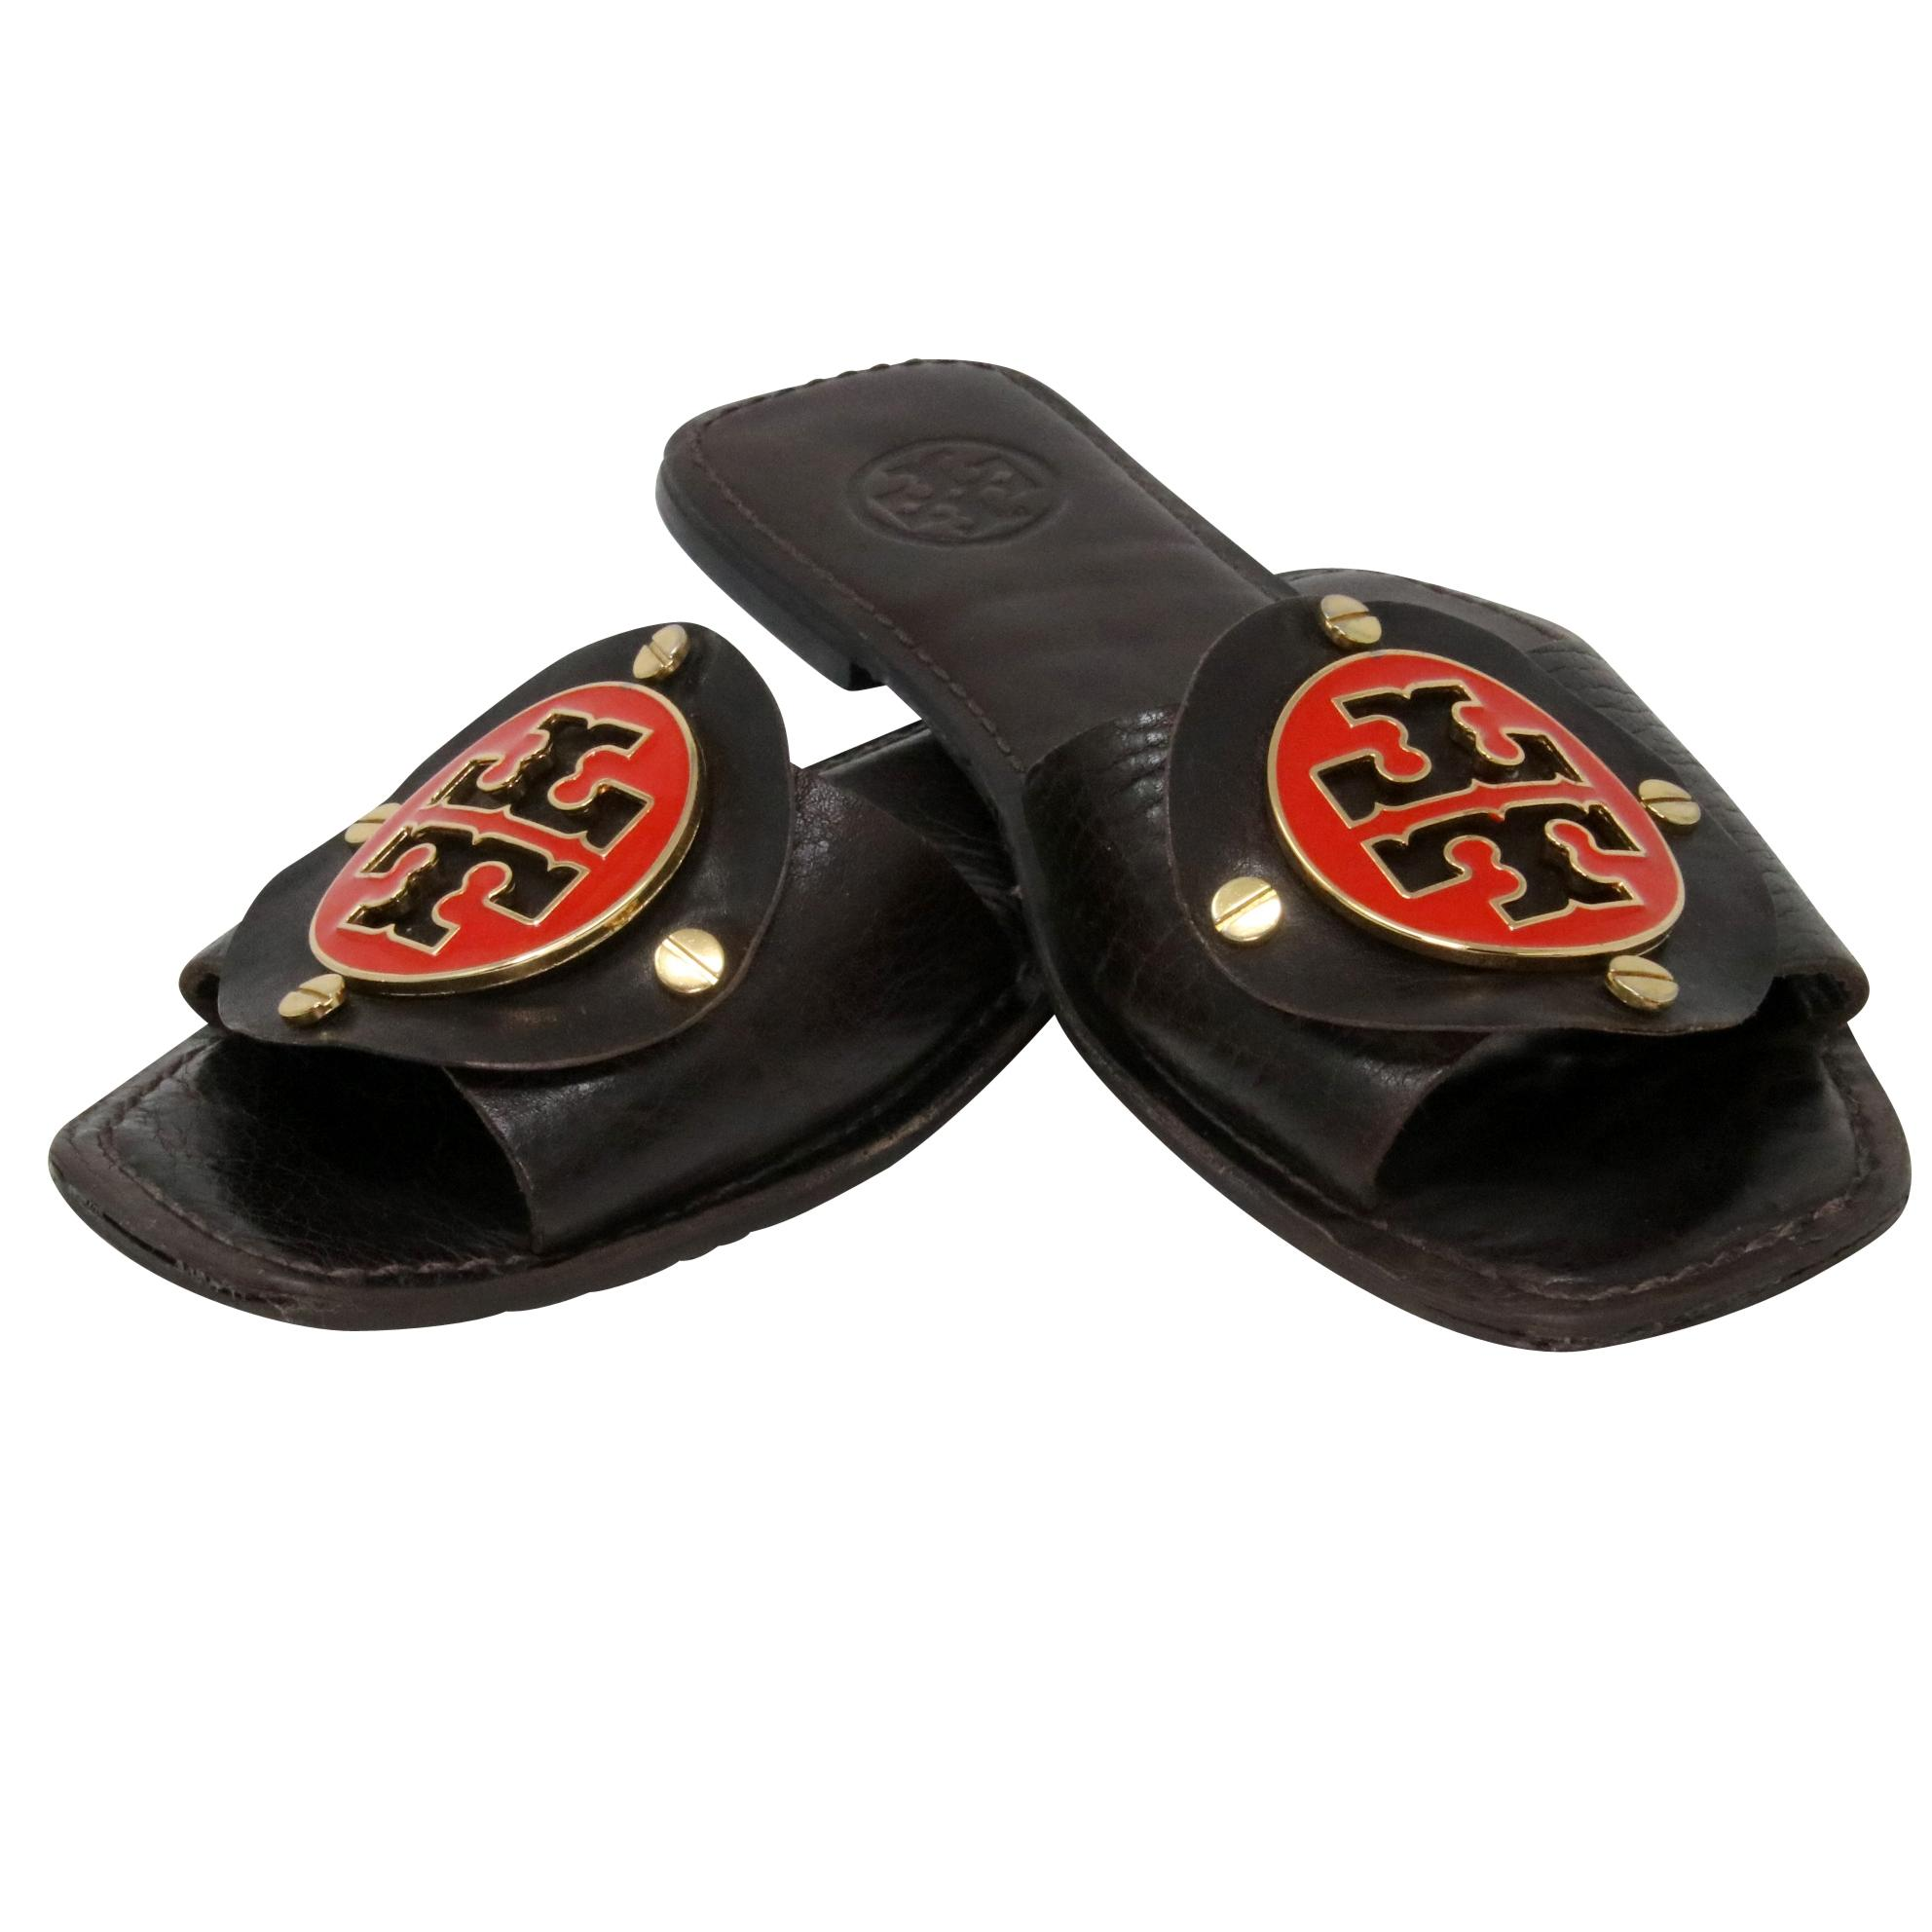 fe5dc656fe20 ... Tory Burch Brown Classic Leather Studded Logo Flat Flat Flat Sandals  Size US 8 Regular ...